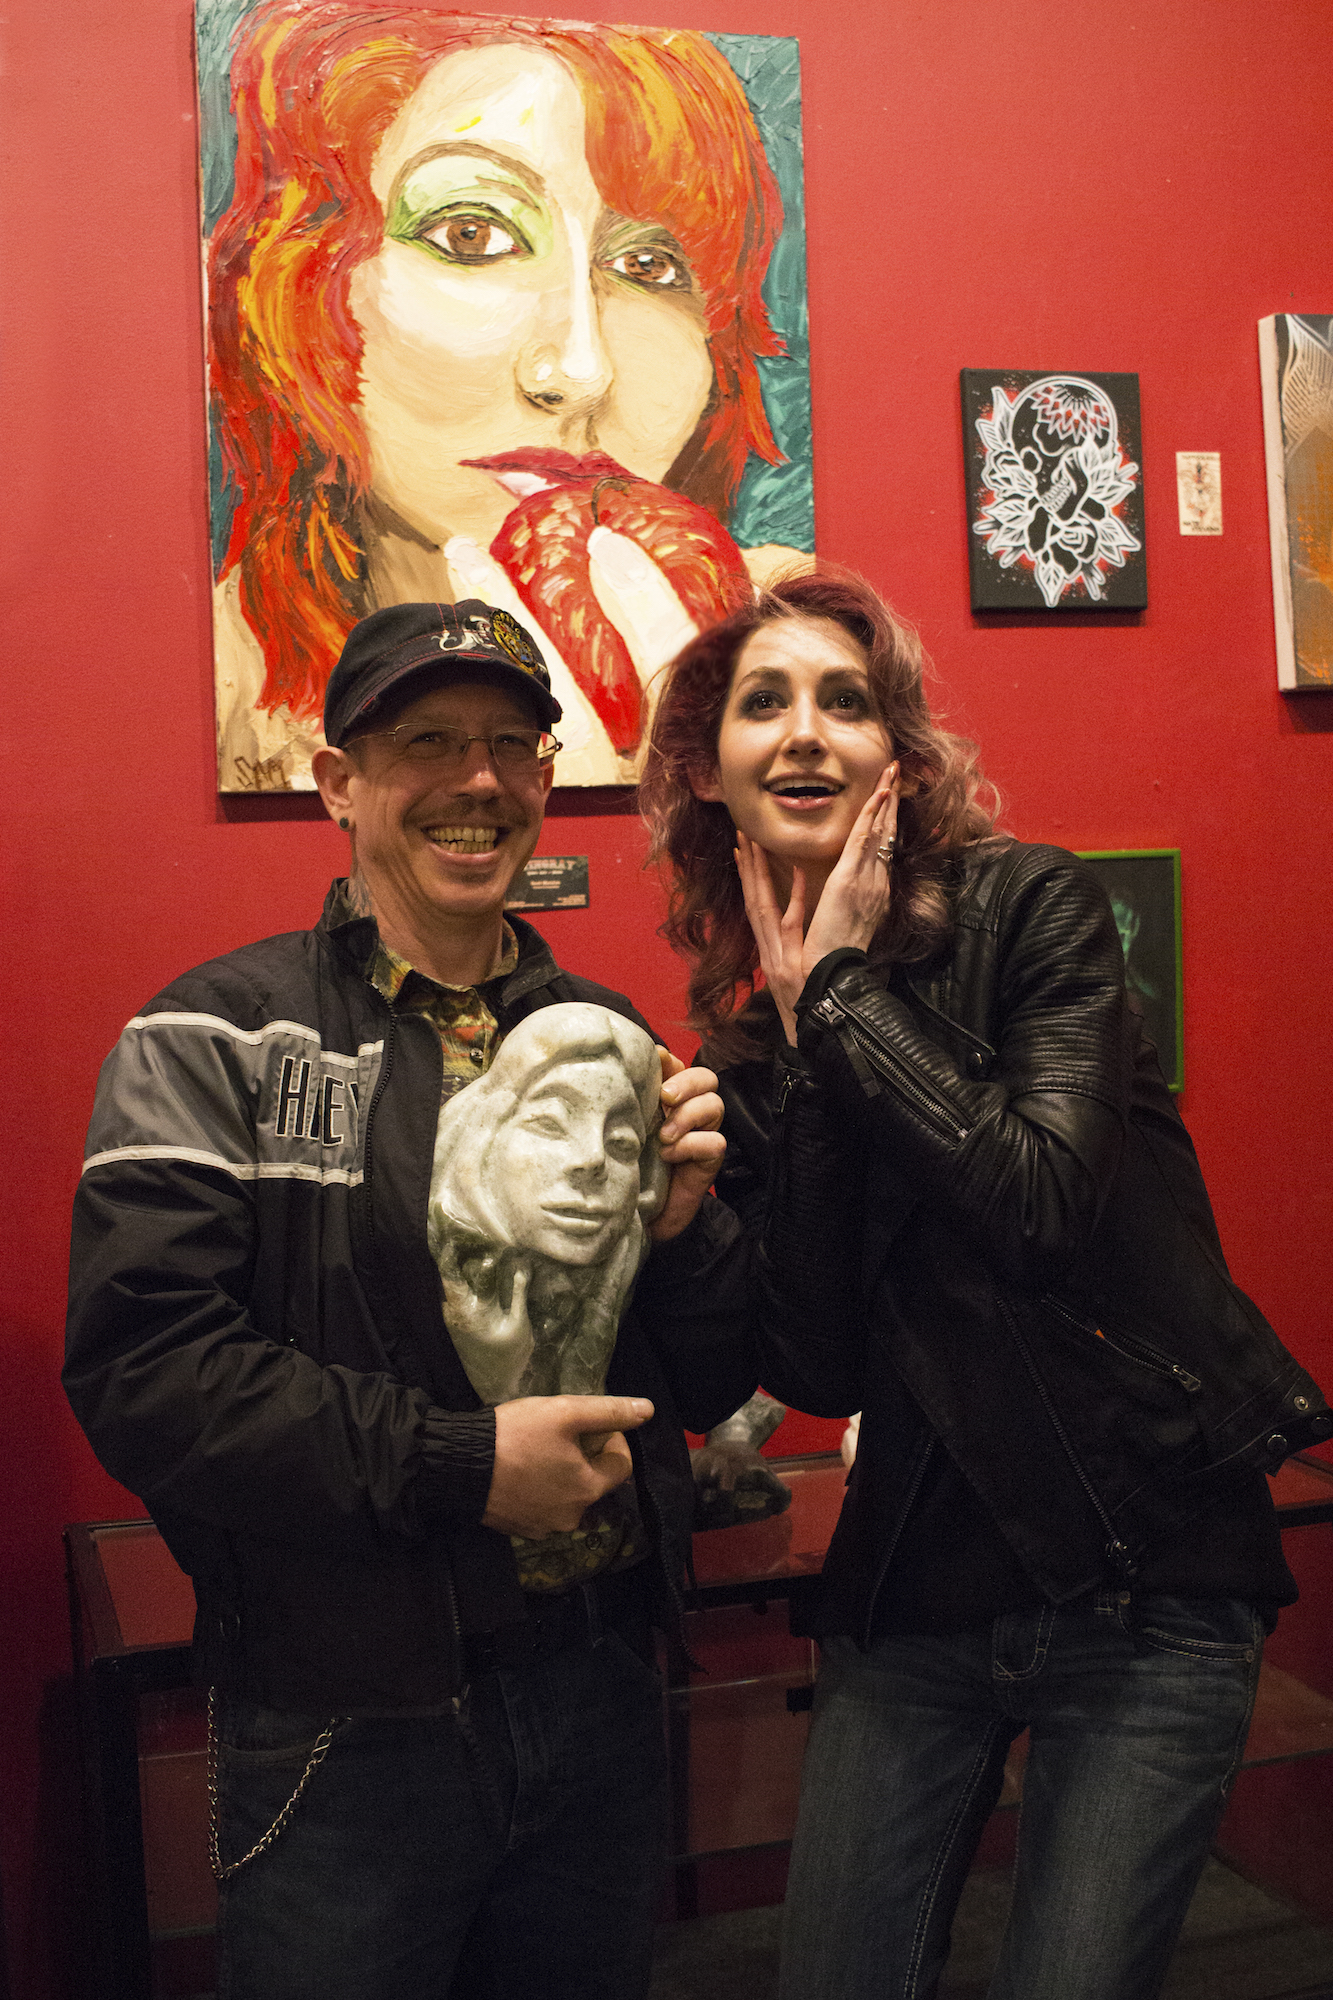 Scott Matalon presents his sculpture of Geena Matuson, Stingray Body Art Tattoo Artist Art Show, March 2016.